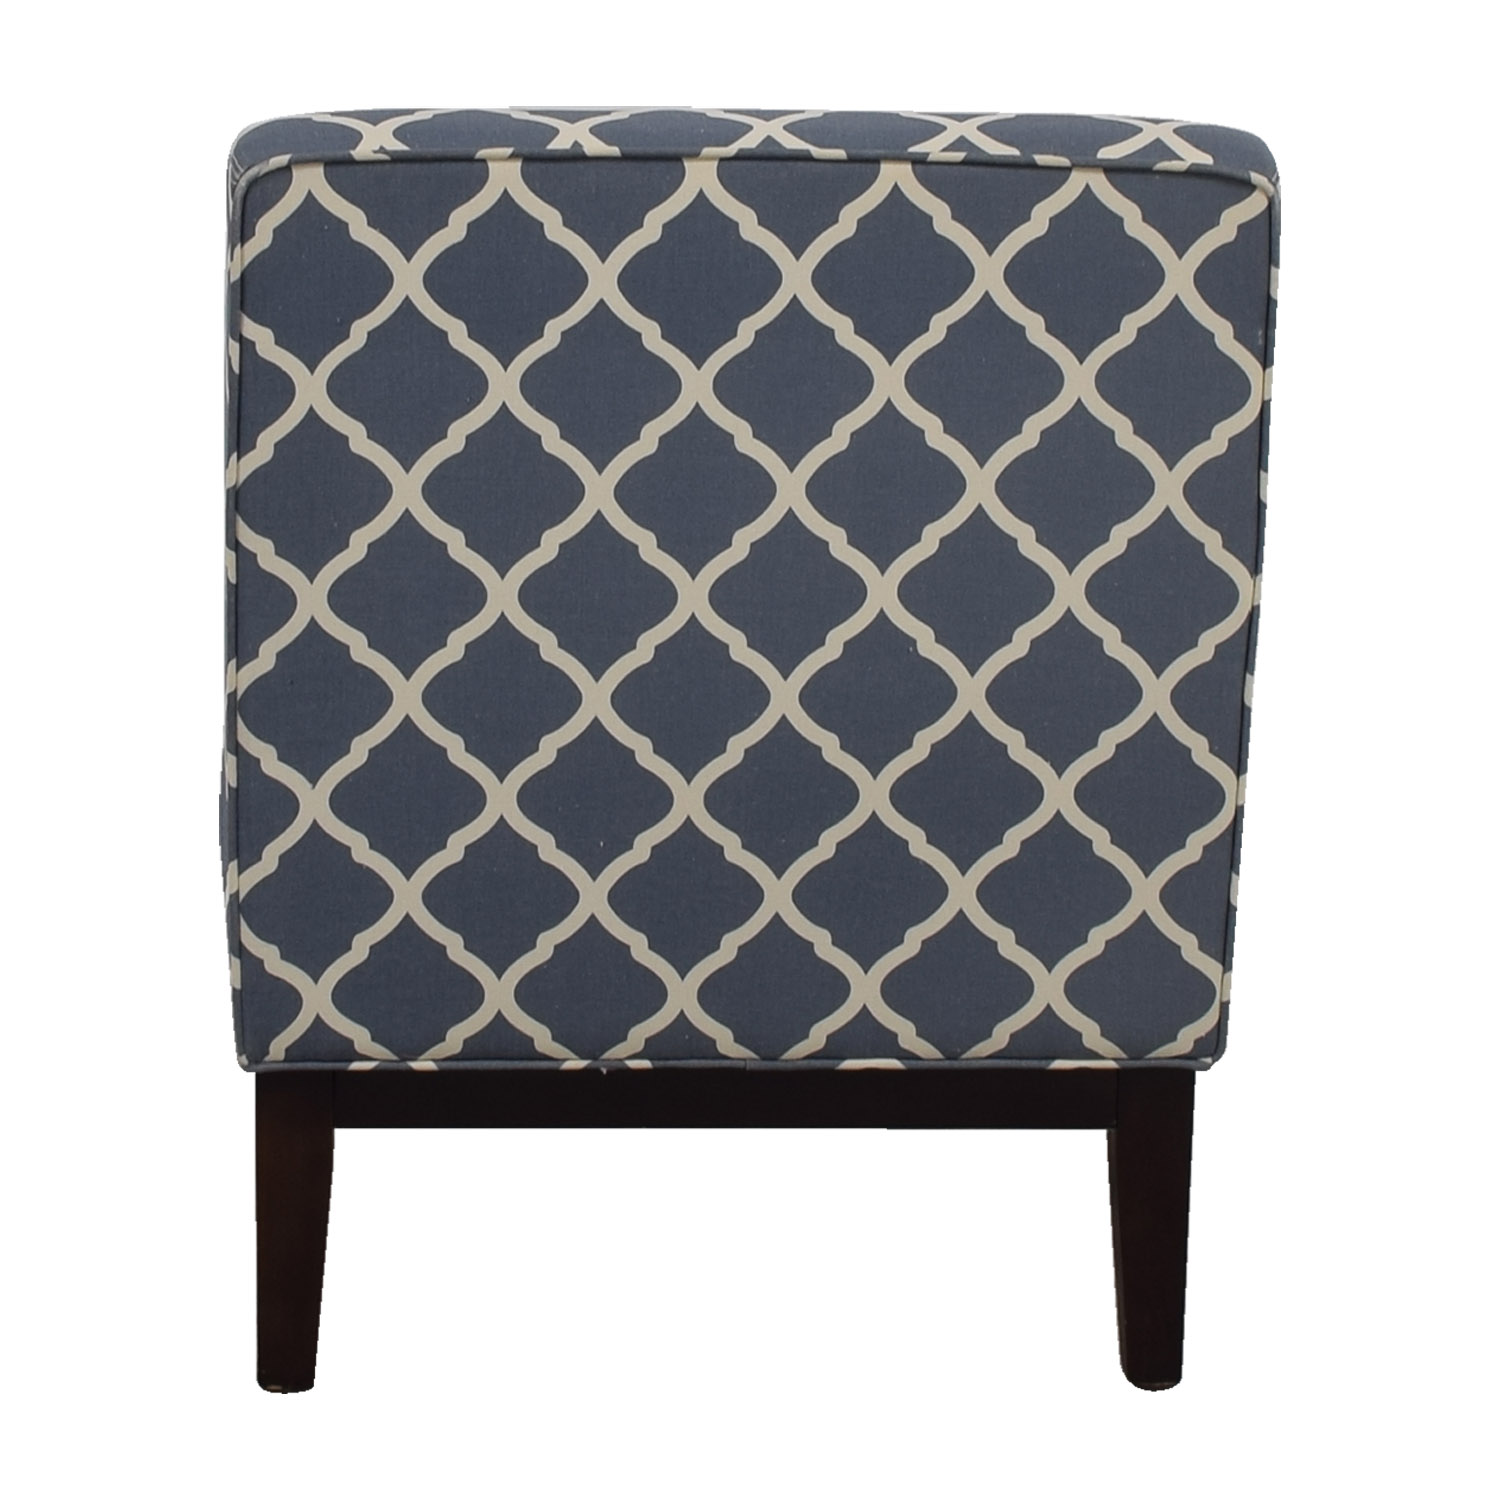 Joss and Main Blue and White Accent Chair sale